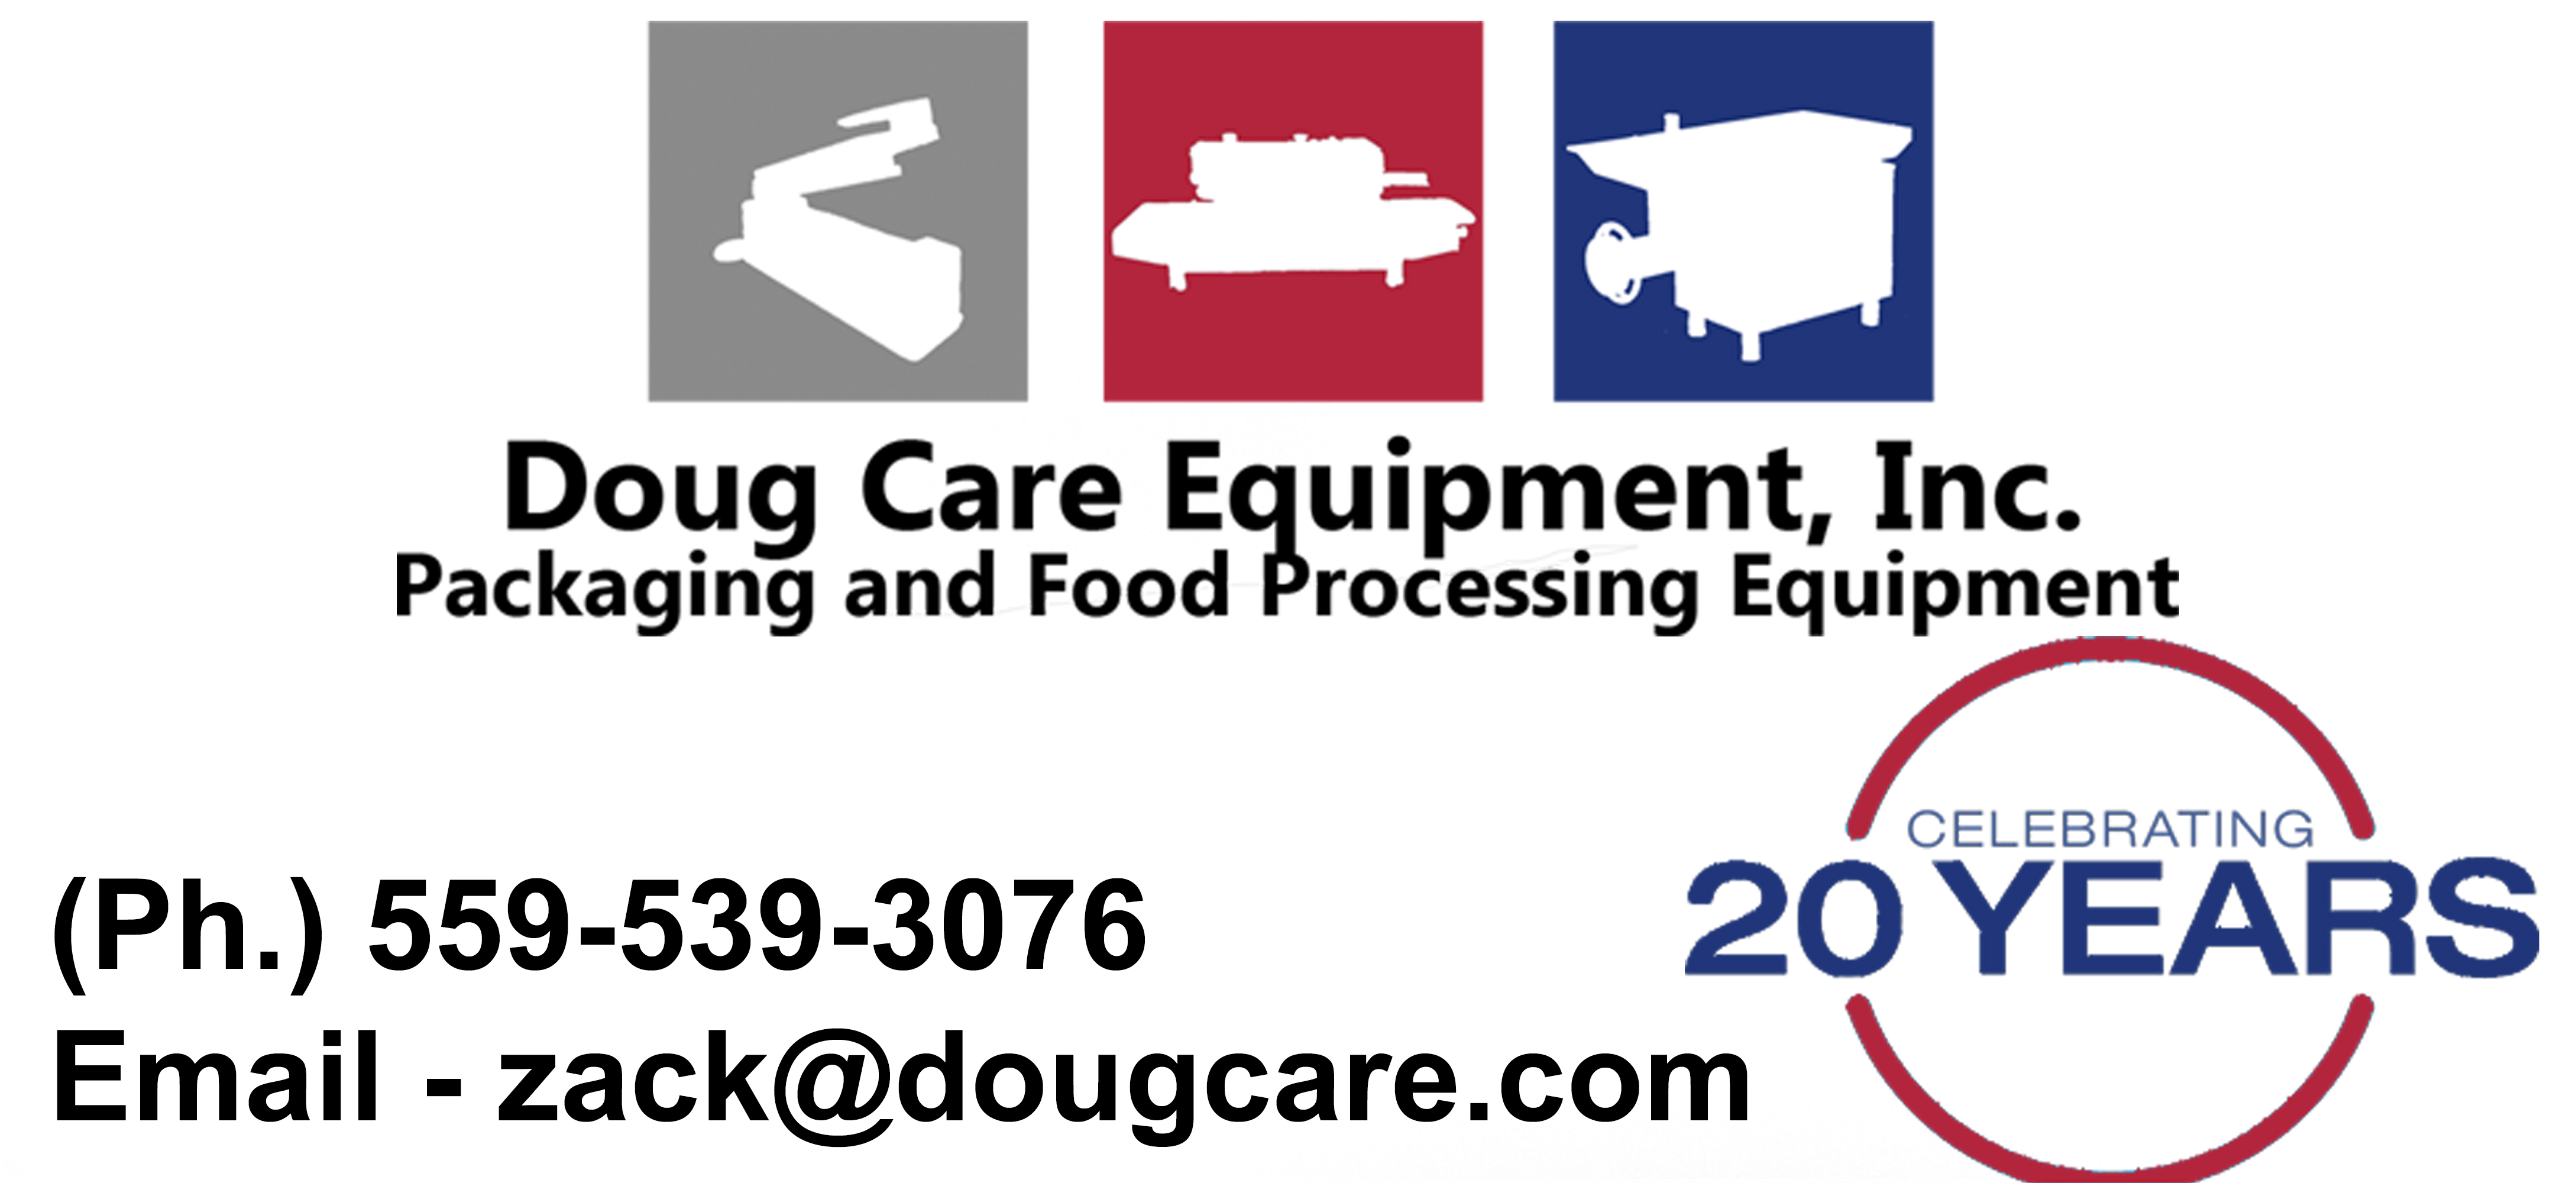 Doug Care Equipment, Inc.